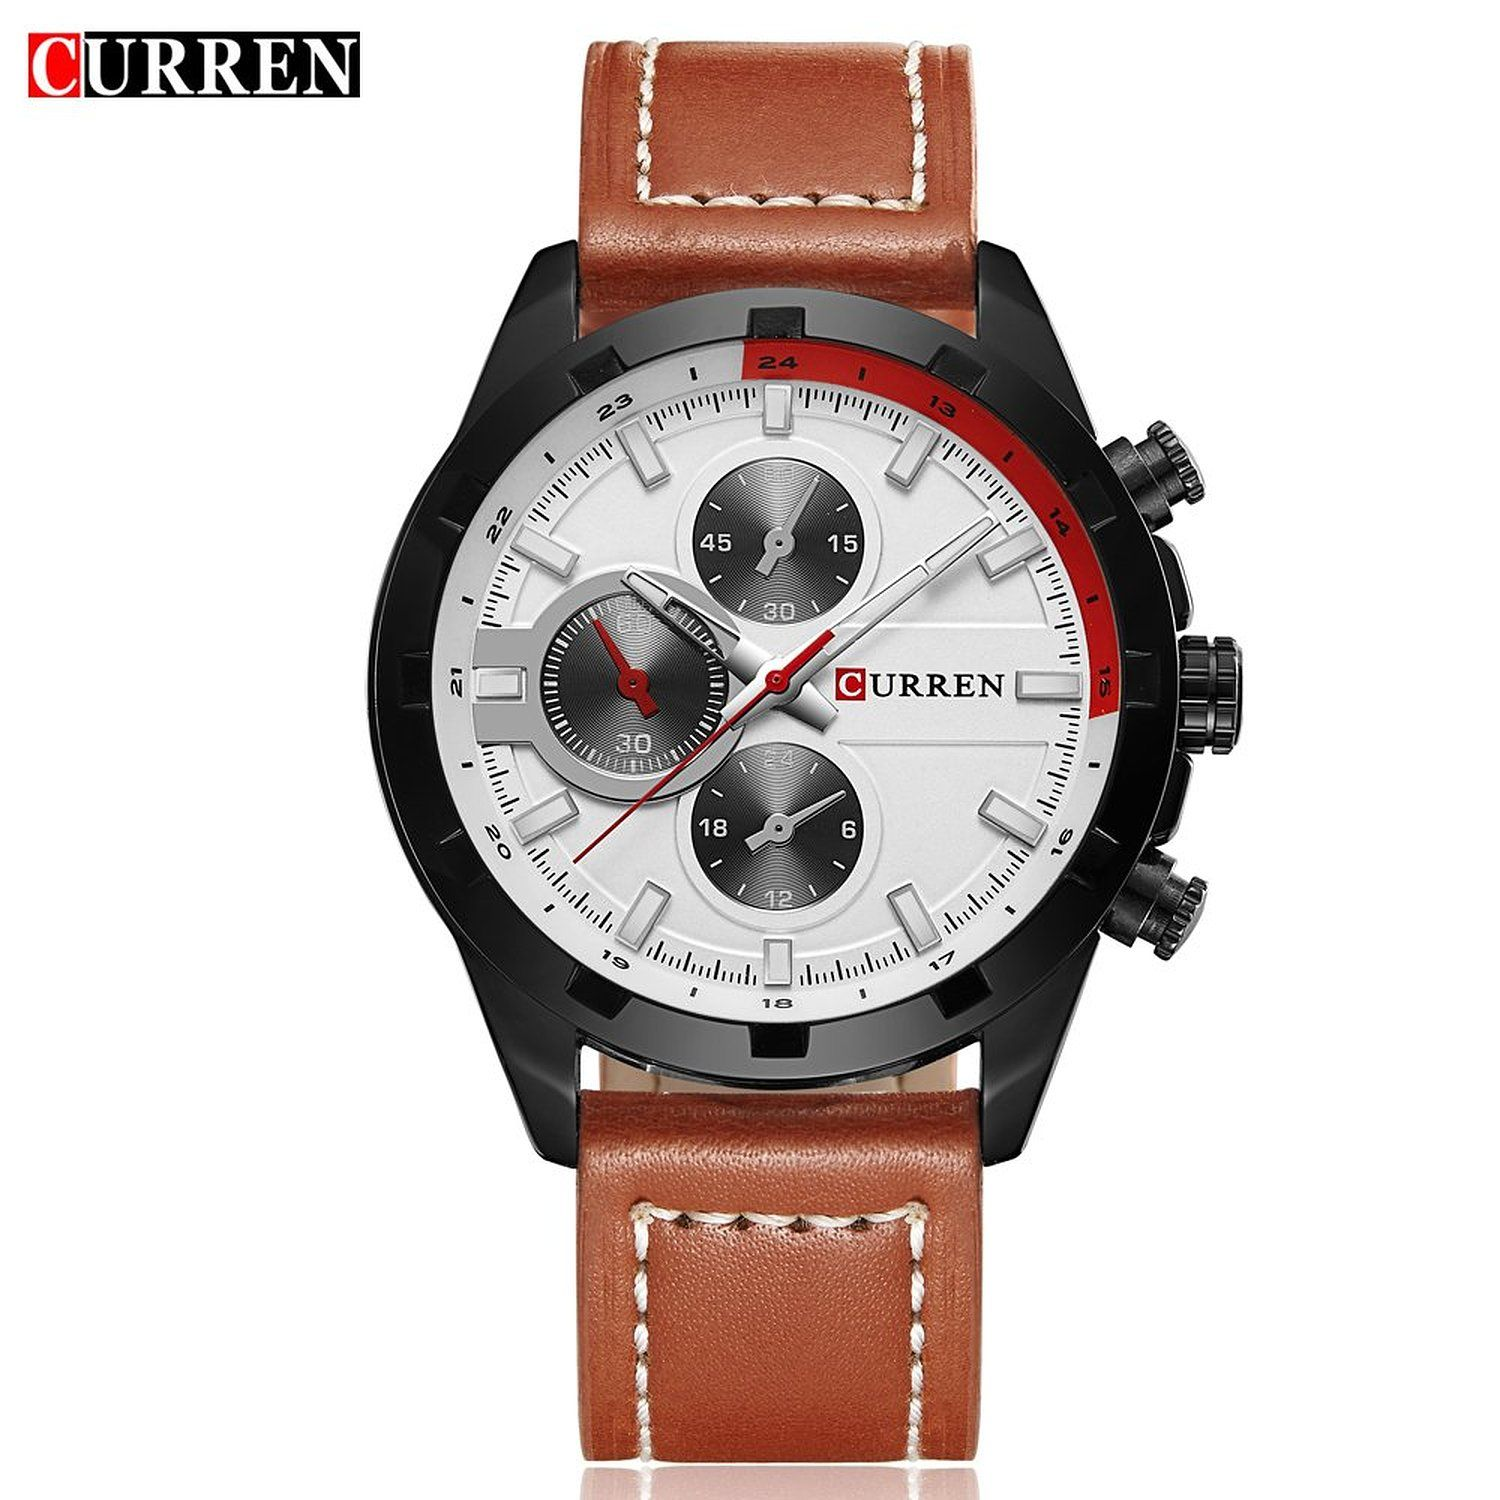 52da6b8e64bd Amazon.com  CURREN 8216 Men s Fashion Casual Military Quartz Wrist Watch  with White Dial Brown Leather Strap  Watches